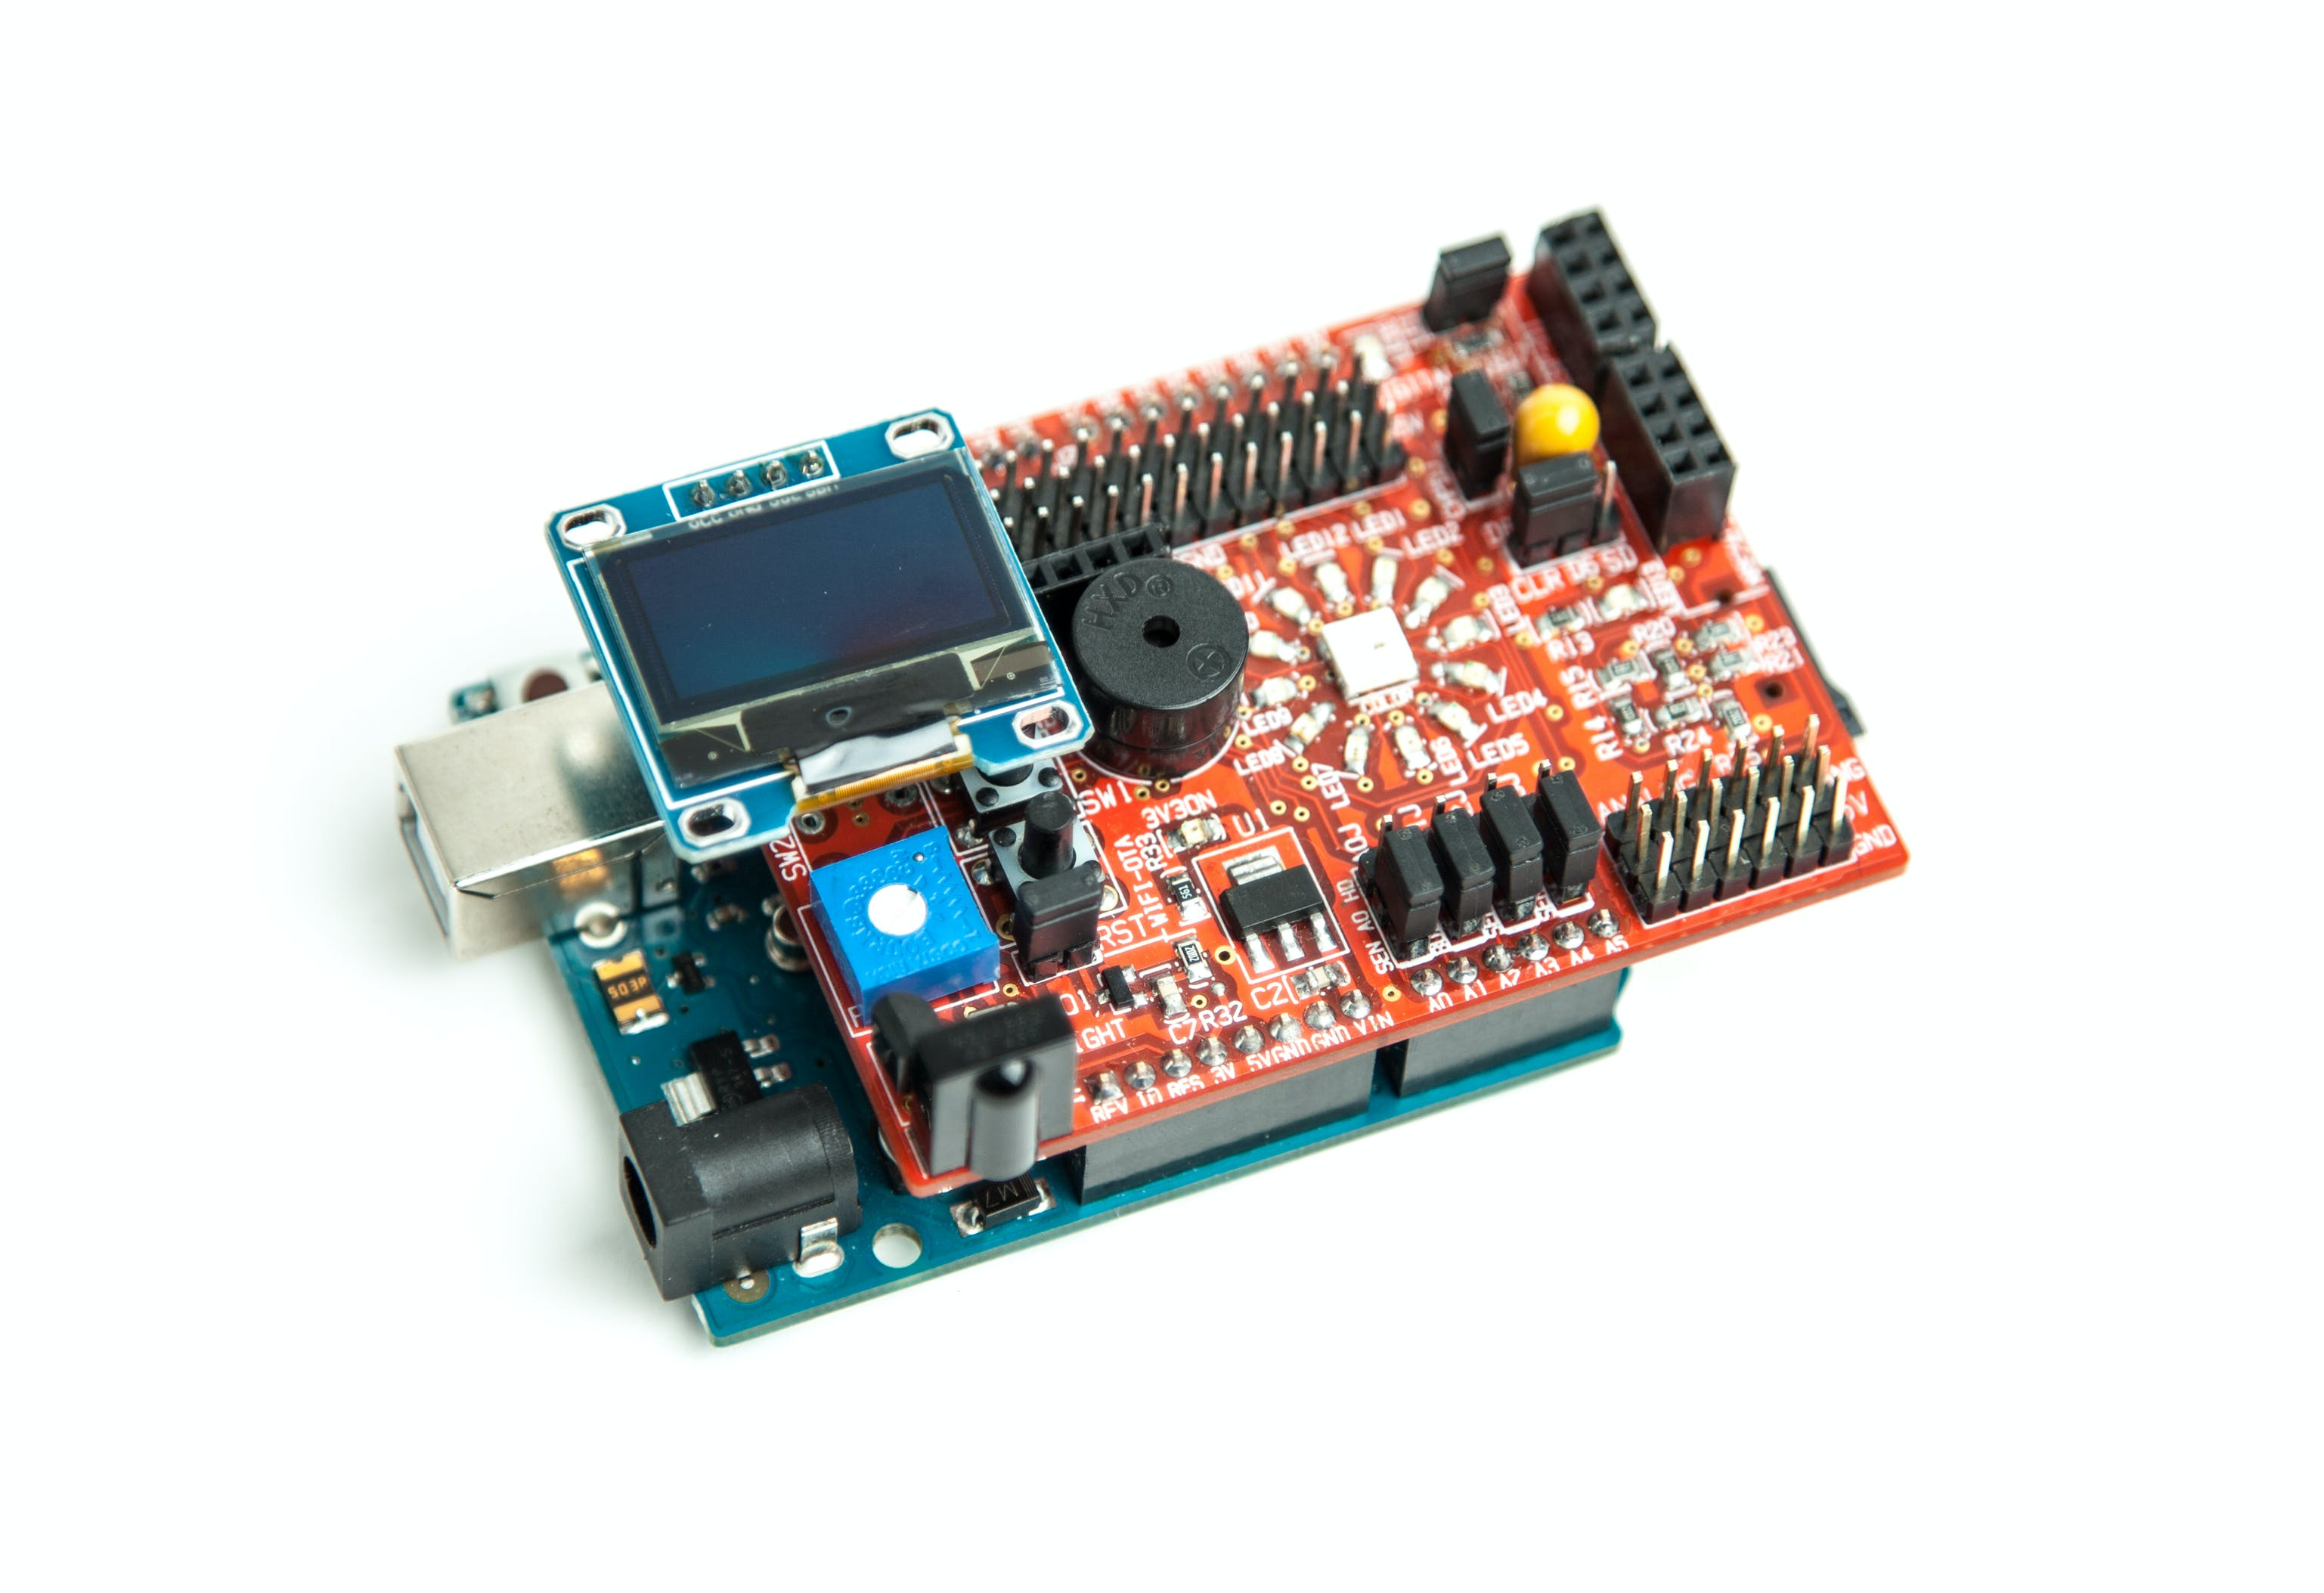 connect the i2c oled display on a receiver side as shown in image.